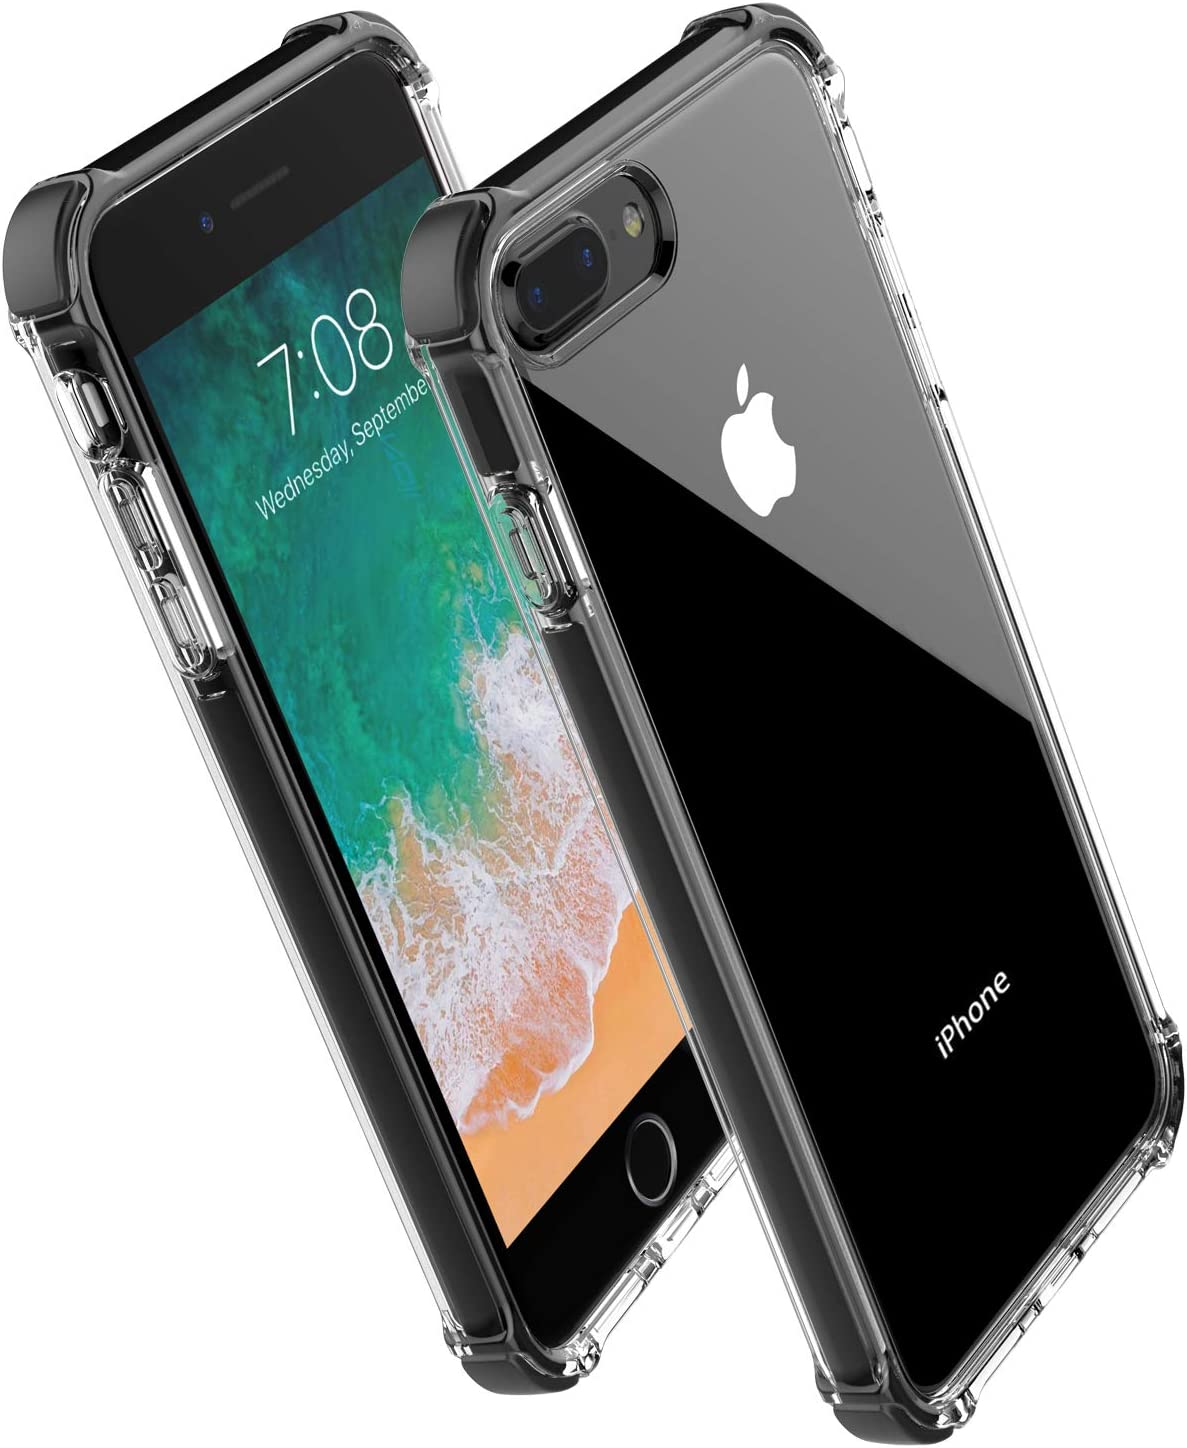 Amazon Com For Iphone 8 Plus Case Iphone 7 Plus Case Noii Clear Hybrid Drop Protection Case Tpe Super Rubber Bumper Shockproof Case Upgraded Reinforced Edges Technology Heavy Duty Protective Cover Black